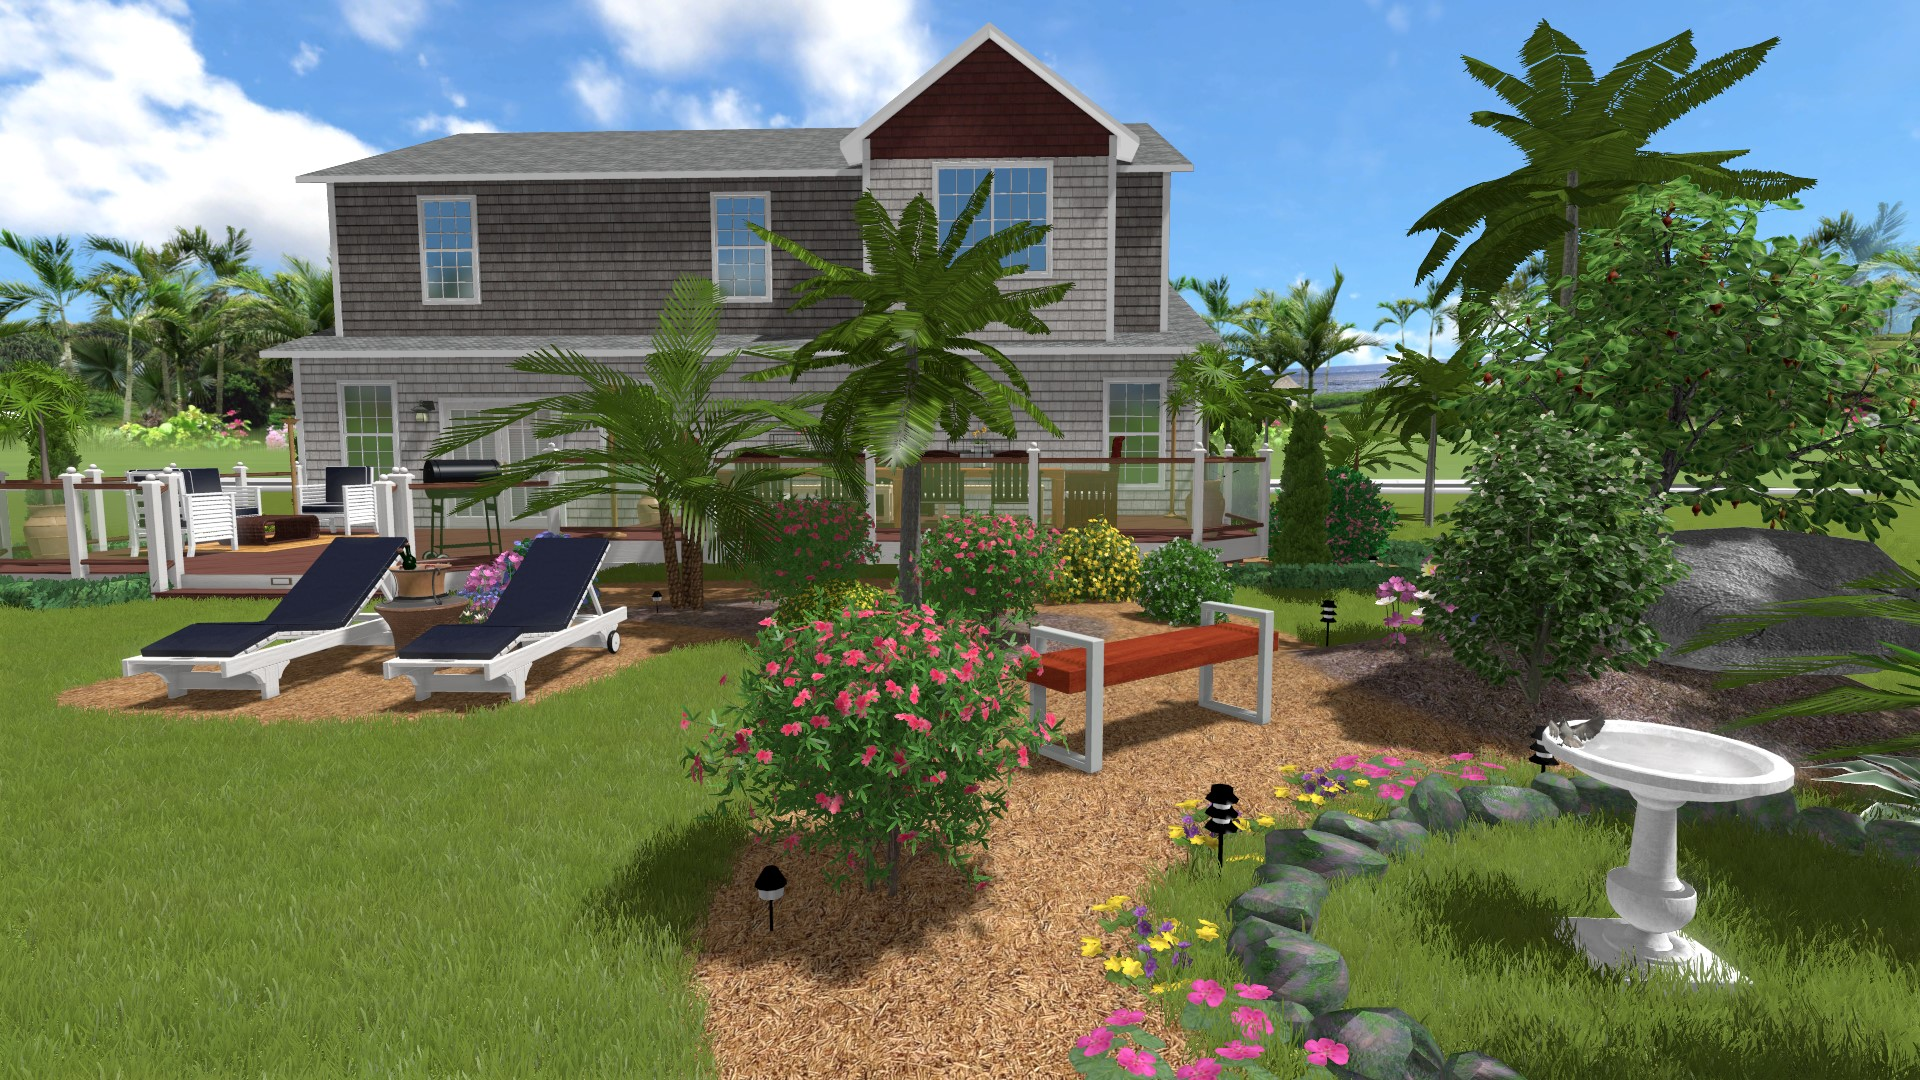 Home Landscaping Software Ideas on Landscape Design Ideas  id=12655